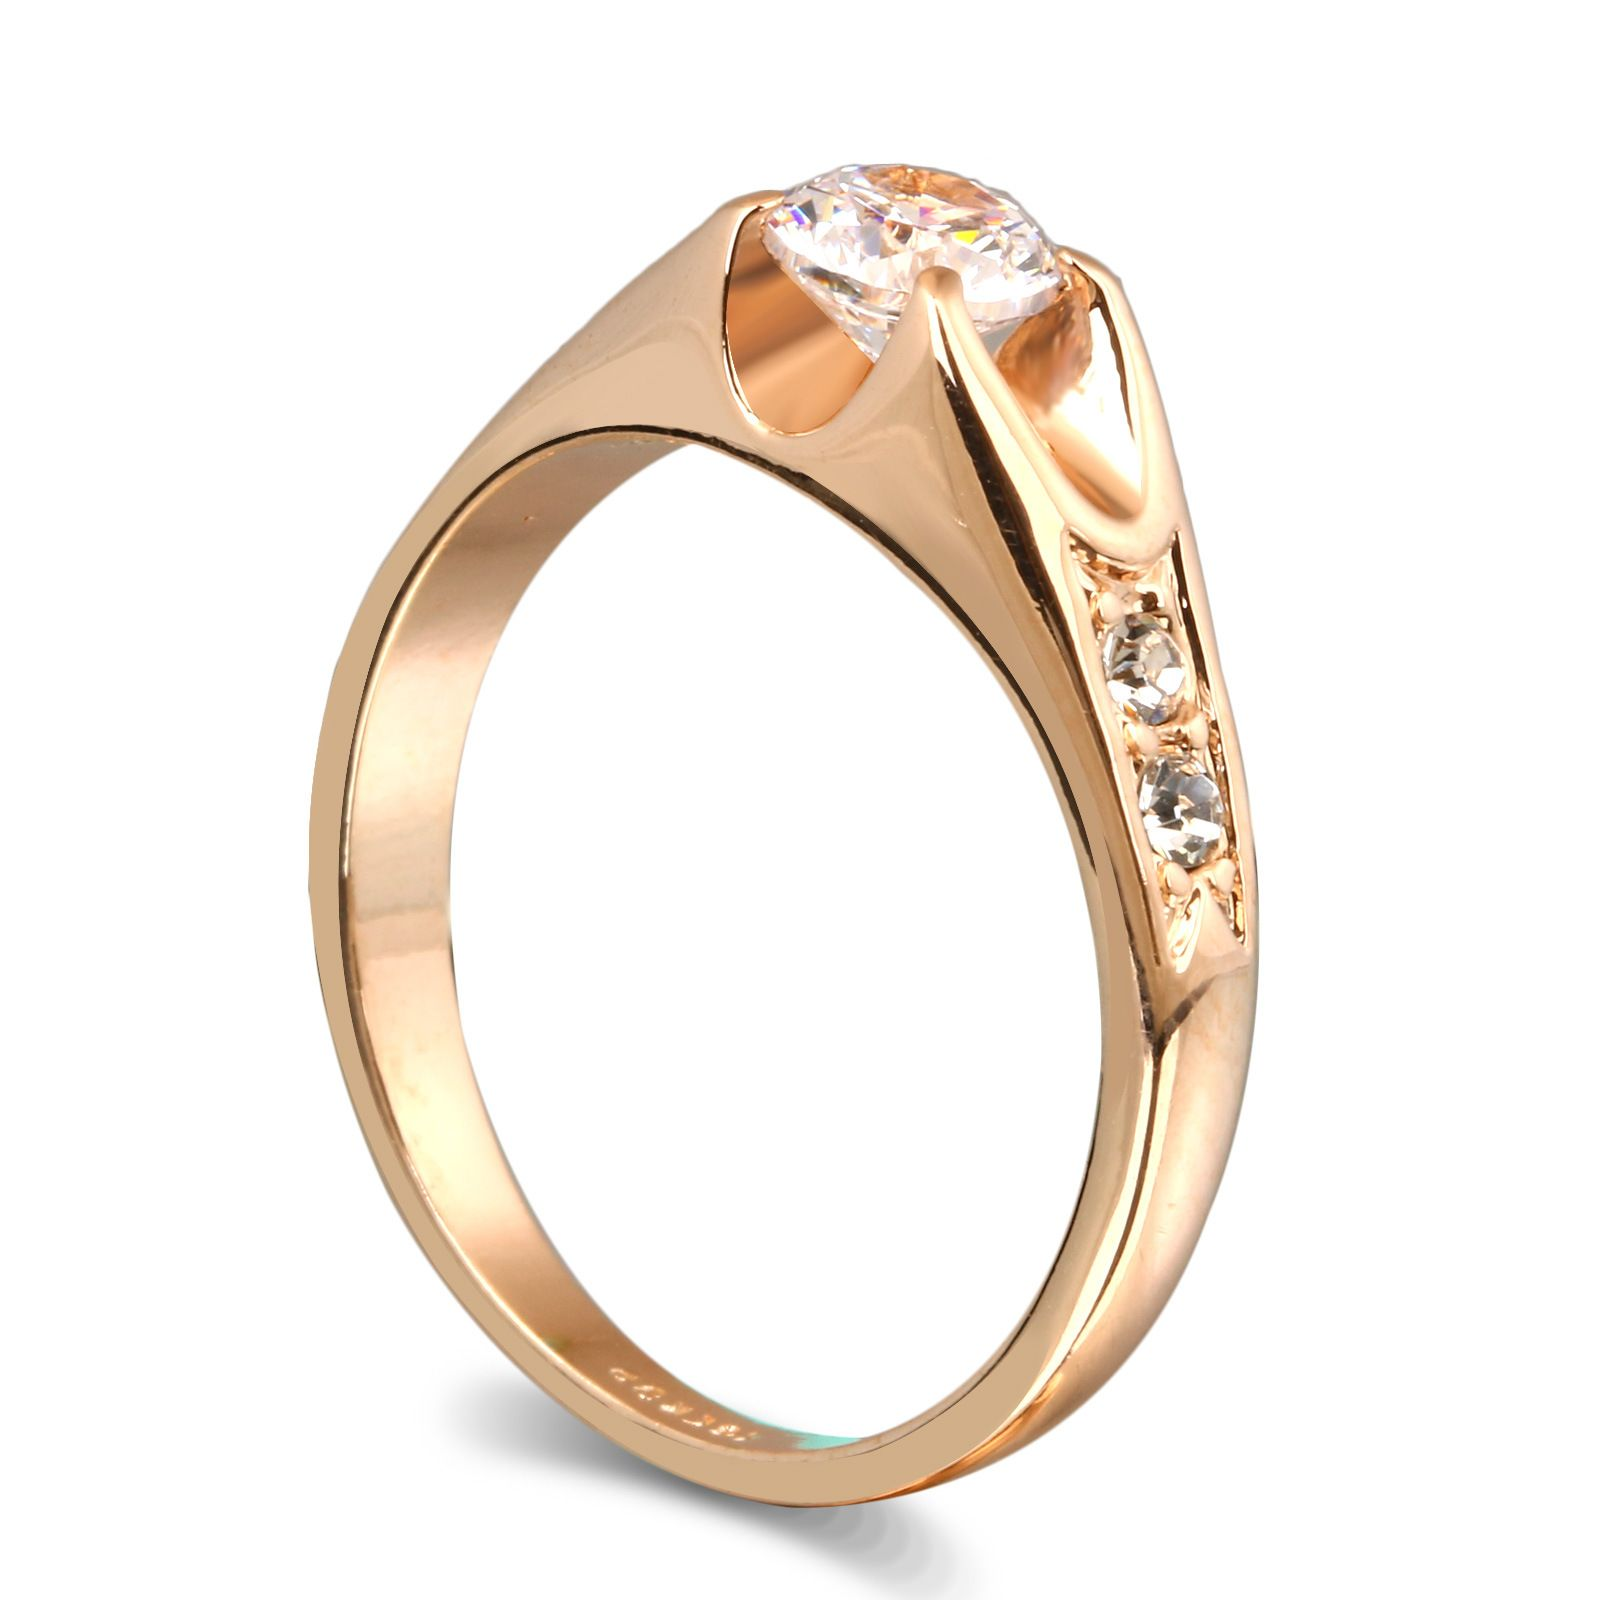 gold couple rings store ring opening undefined silver jewelry product korean